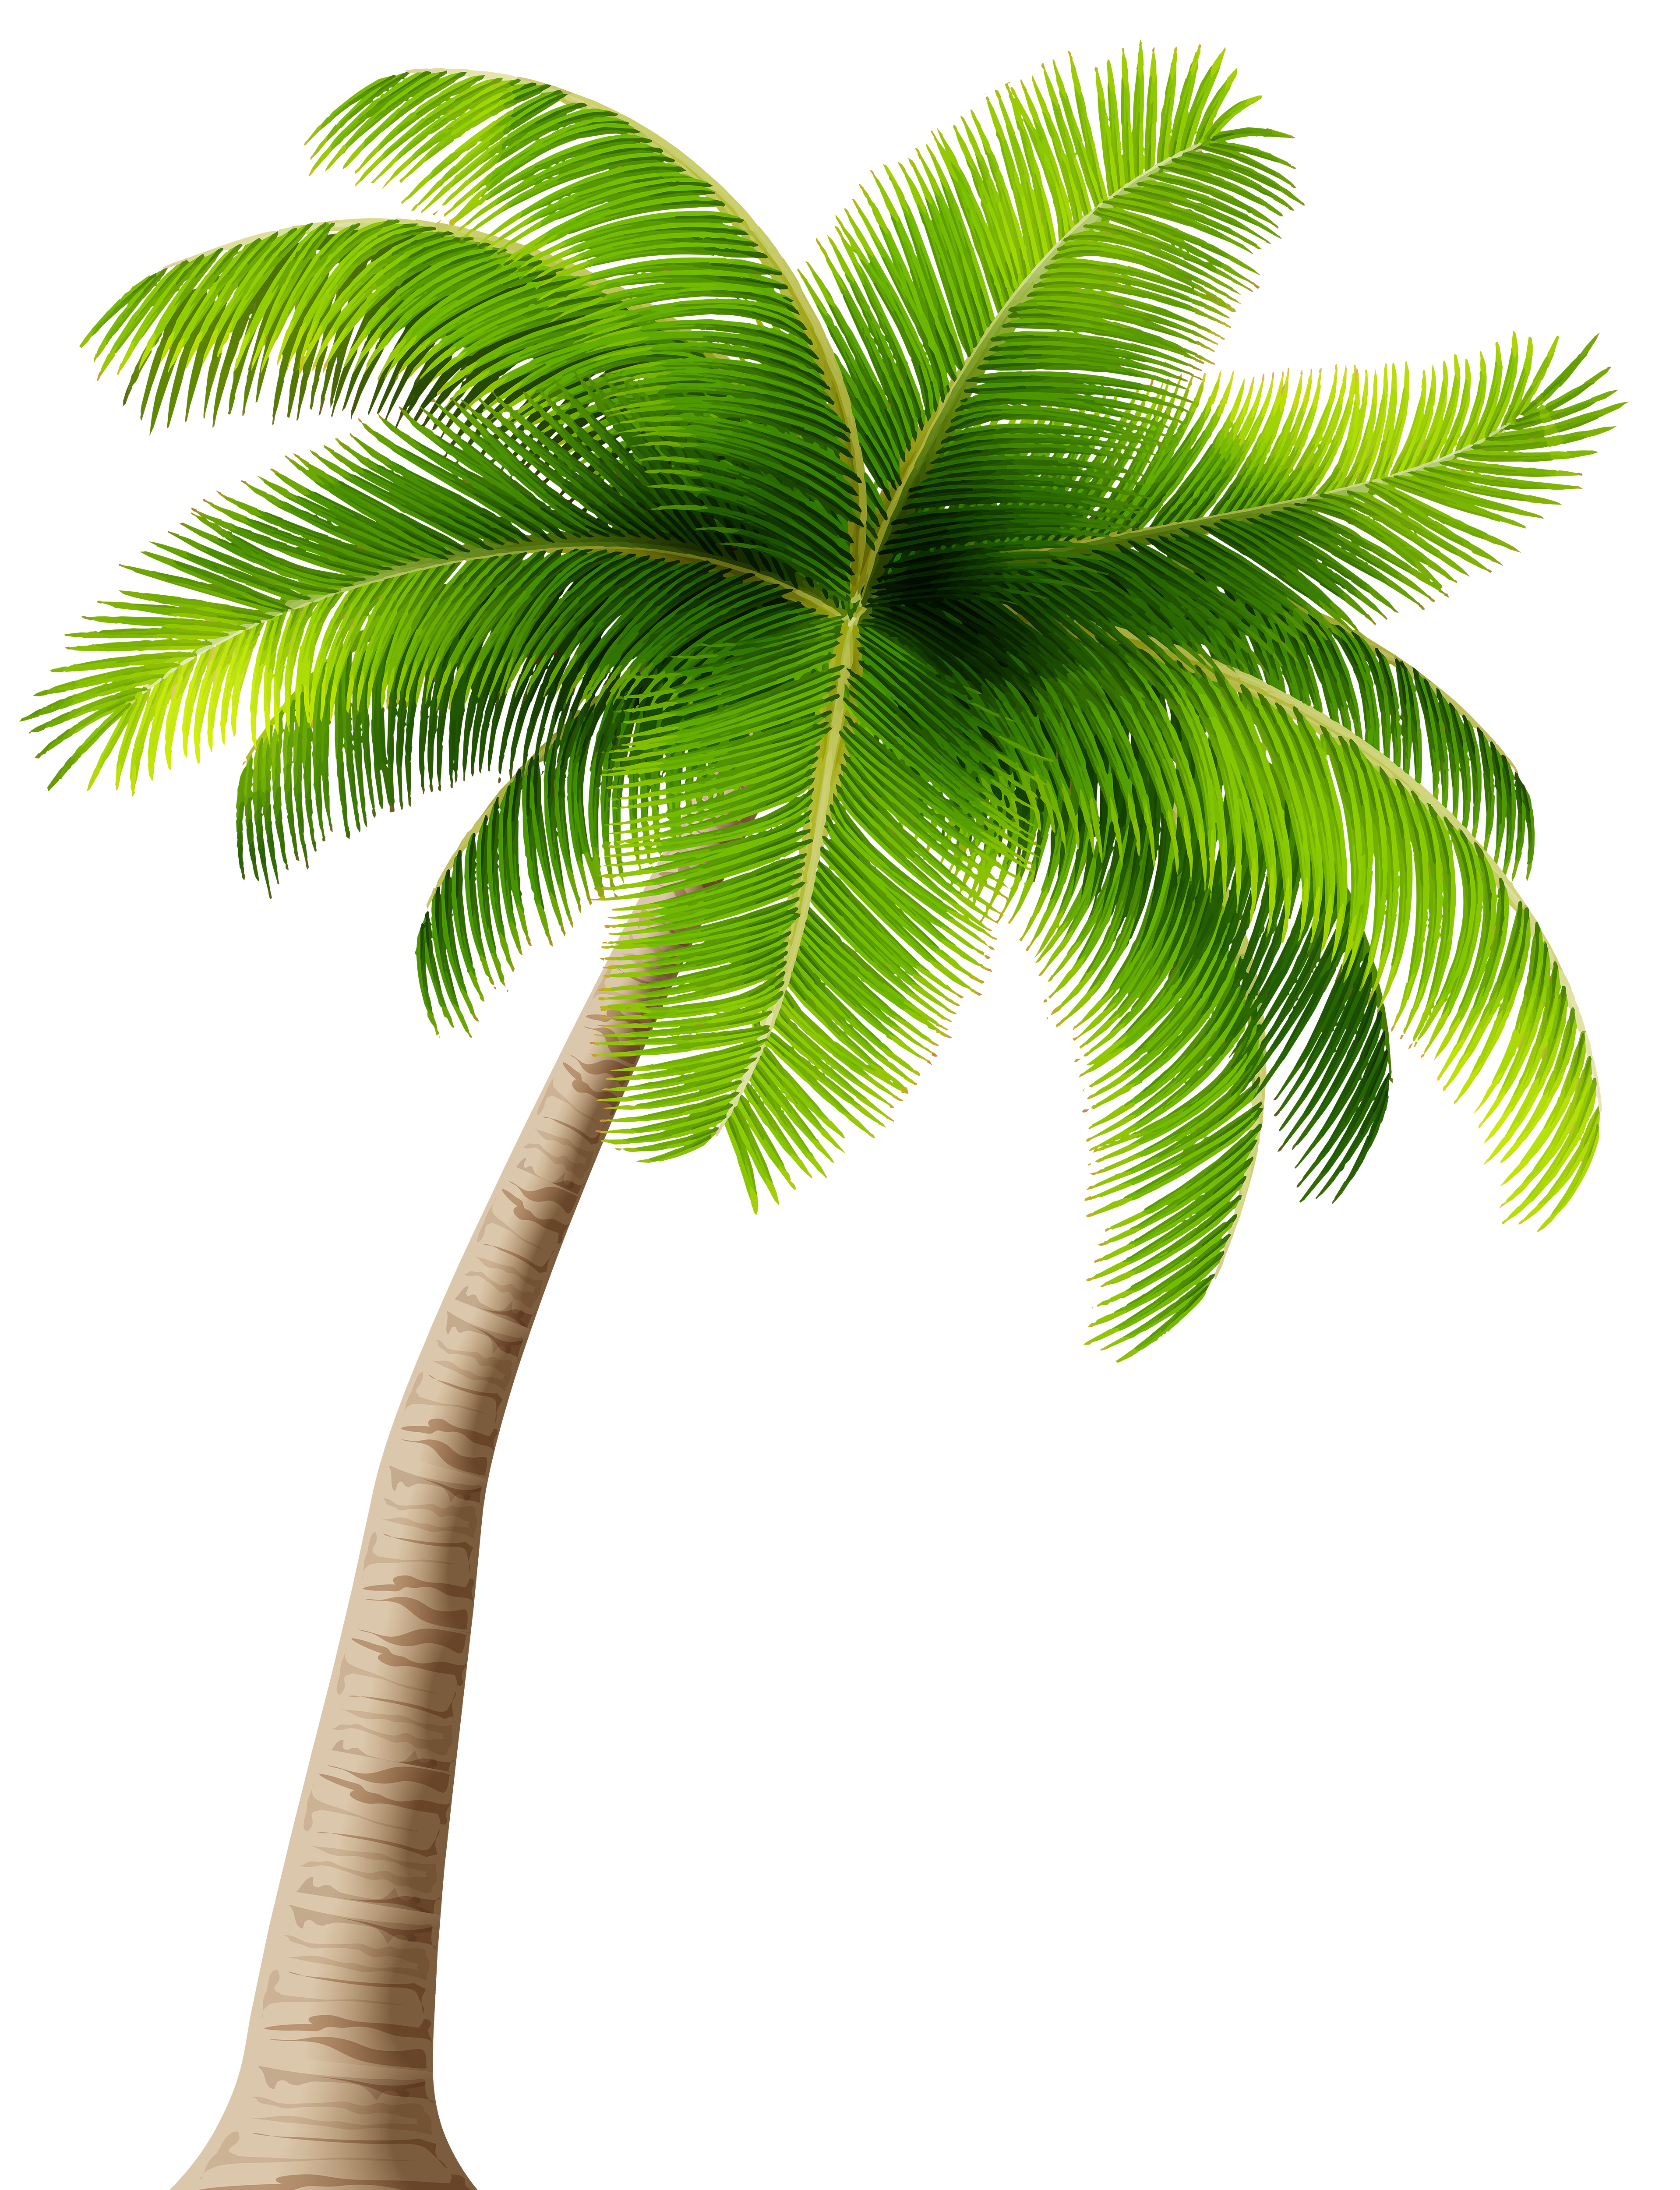 Palm Transparent Png Image Gallery Yopriceville High Quality Images And Transparent Png Free Cli Palm Tree Clip Art Coconut Tree Drawing Palm Tree Drawing